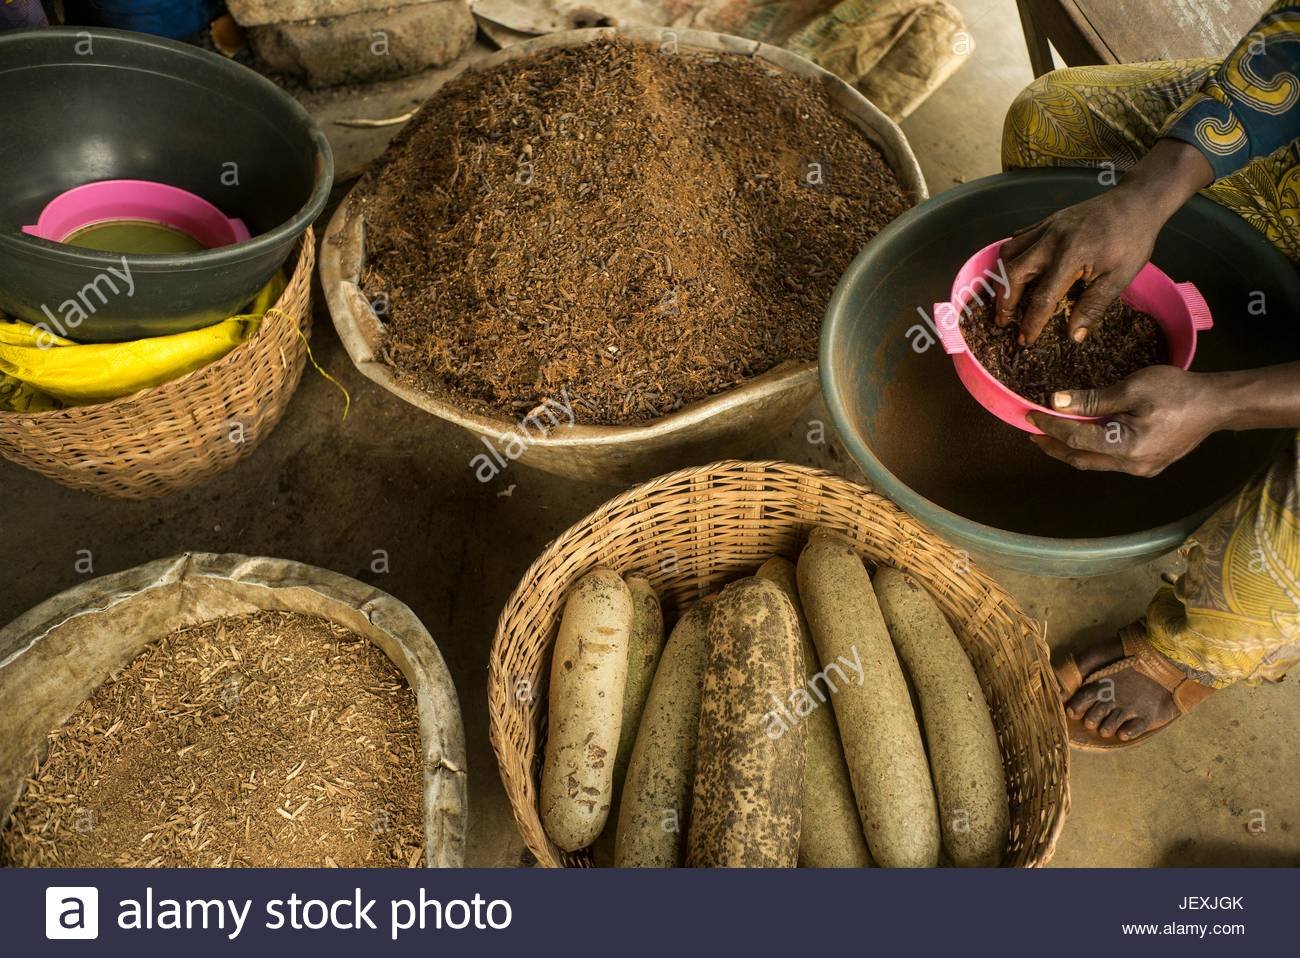 A variety of herbs, leaves and vegetables used in the preparation of traditional medicines. - Stock Image